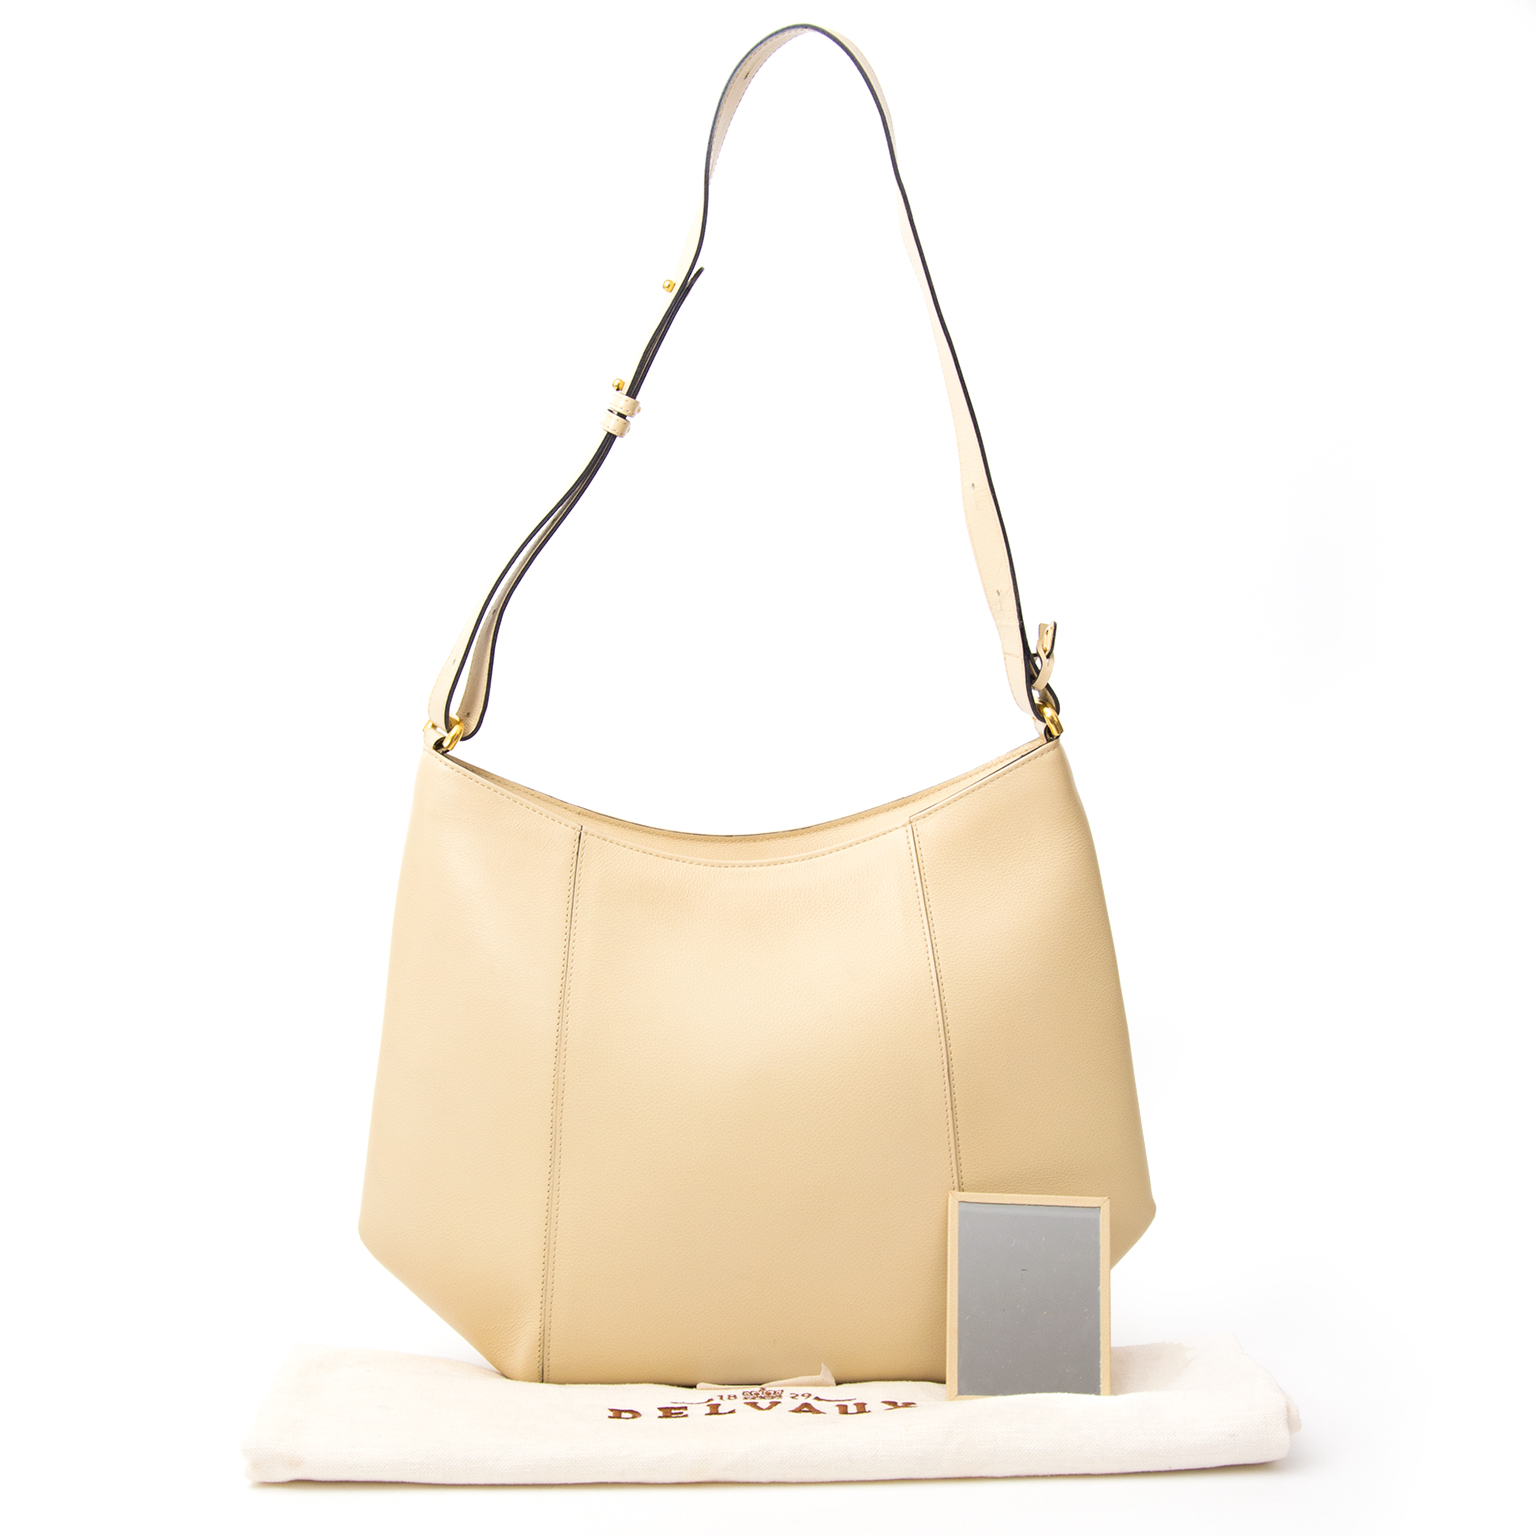 Delvaux Shoulder Bag  Buy authentic Delvaux handbags on LabelLOV vintage webshop for the right price. Safe and secure online shopping.